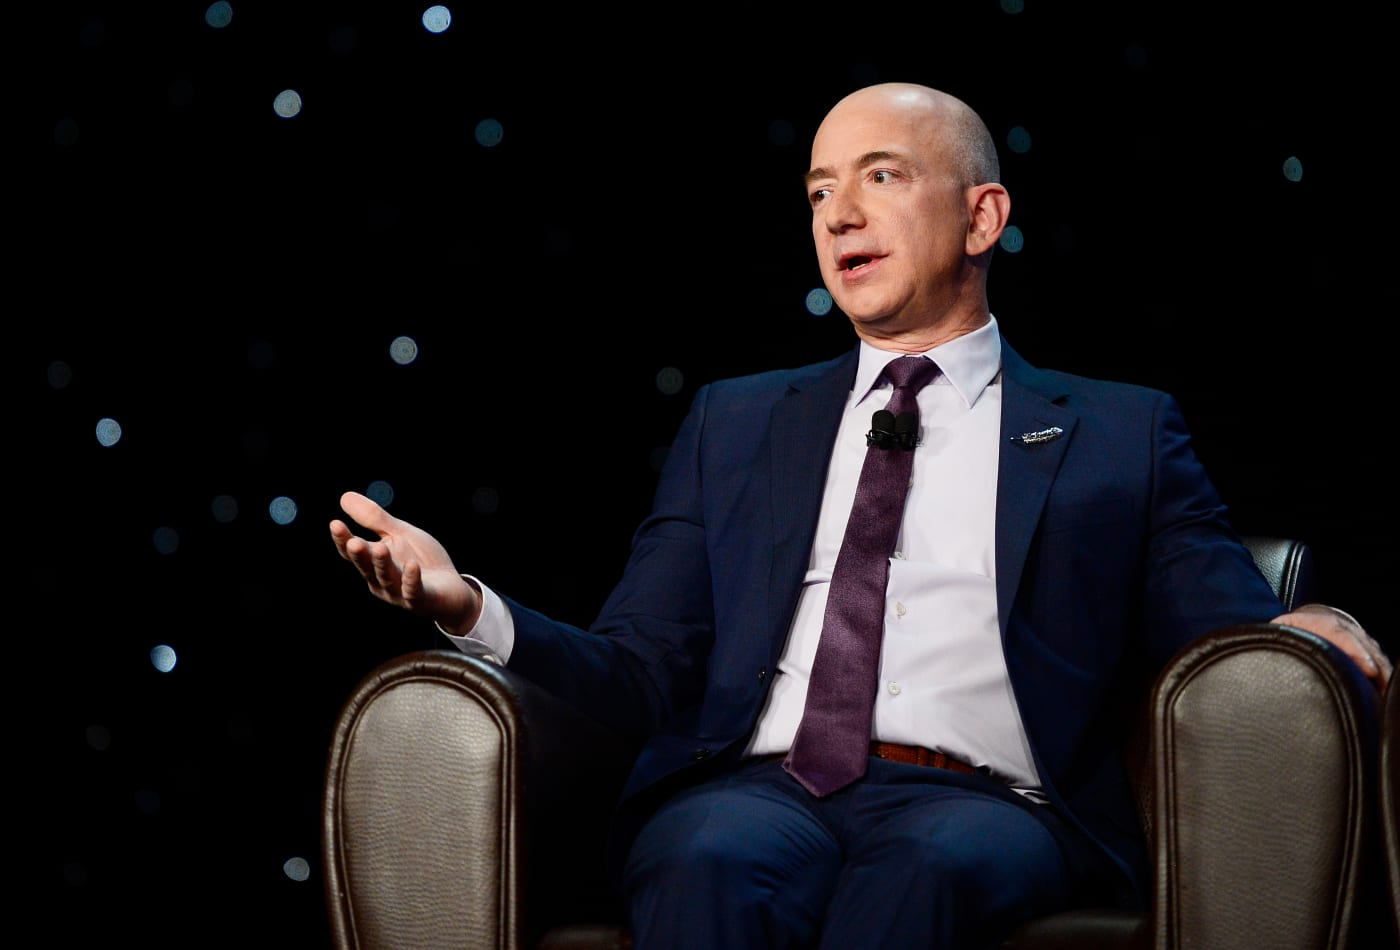 Jeff Bezos to exec after product totally flopped: 'You can't, for one minute, feel bad'